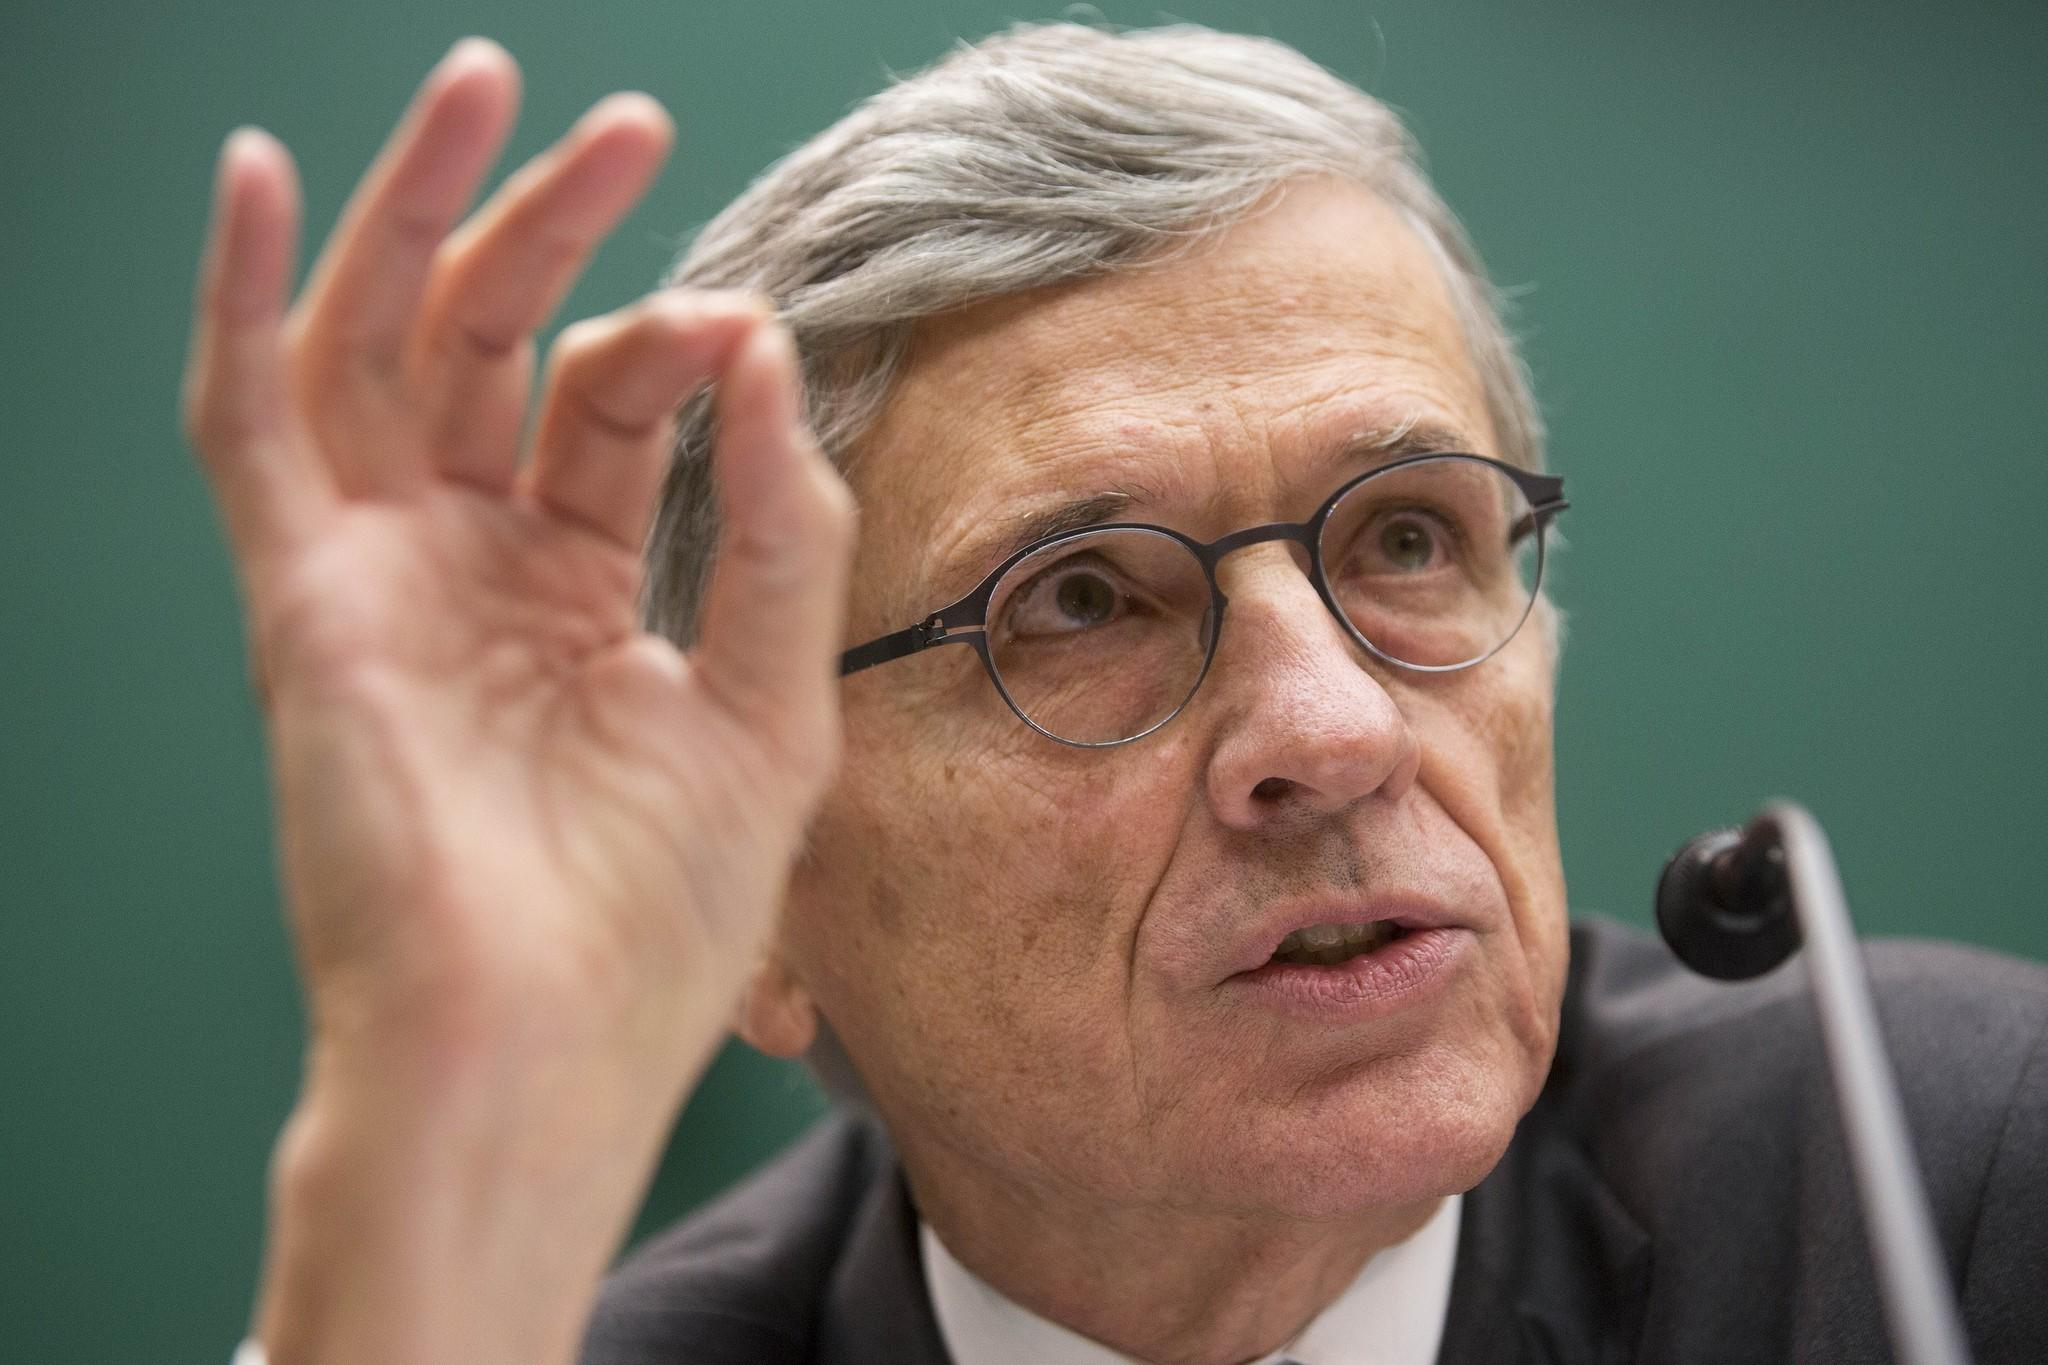 Federal Communications Commission Chairman Tom Wheeler speaks during a House Energy and Commerce Subcommittee hearing in Washington last year.